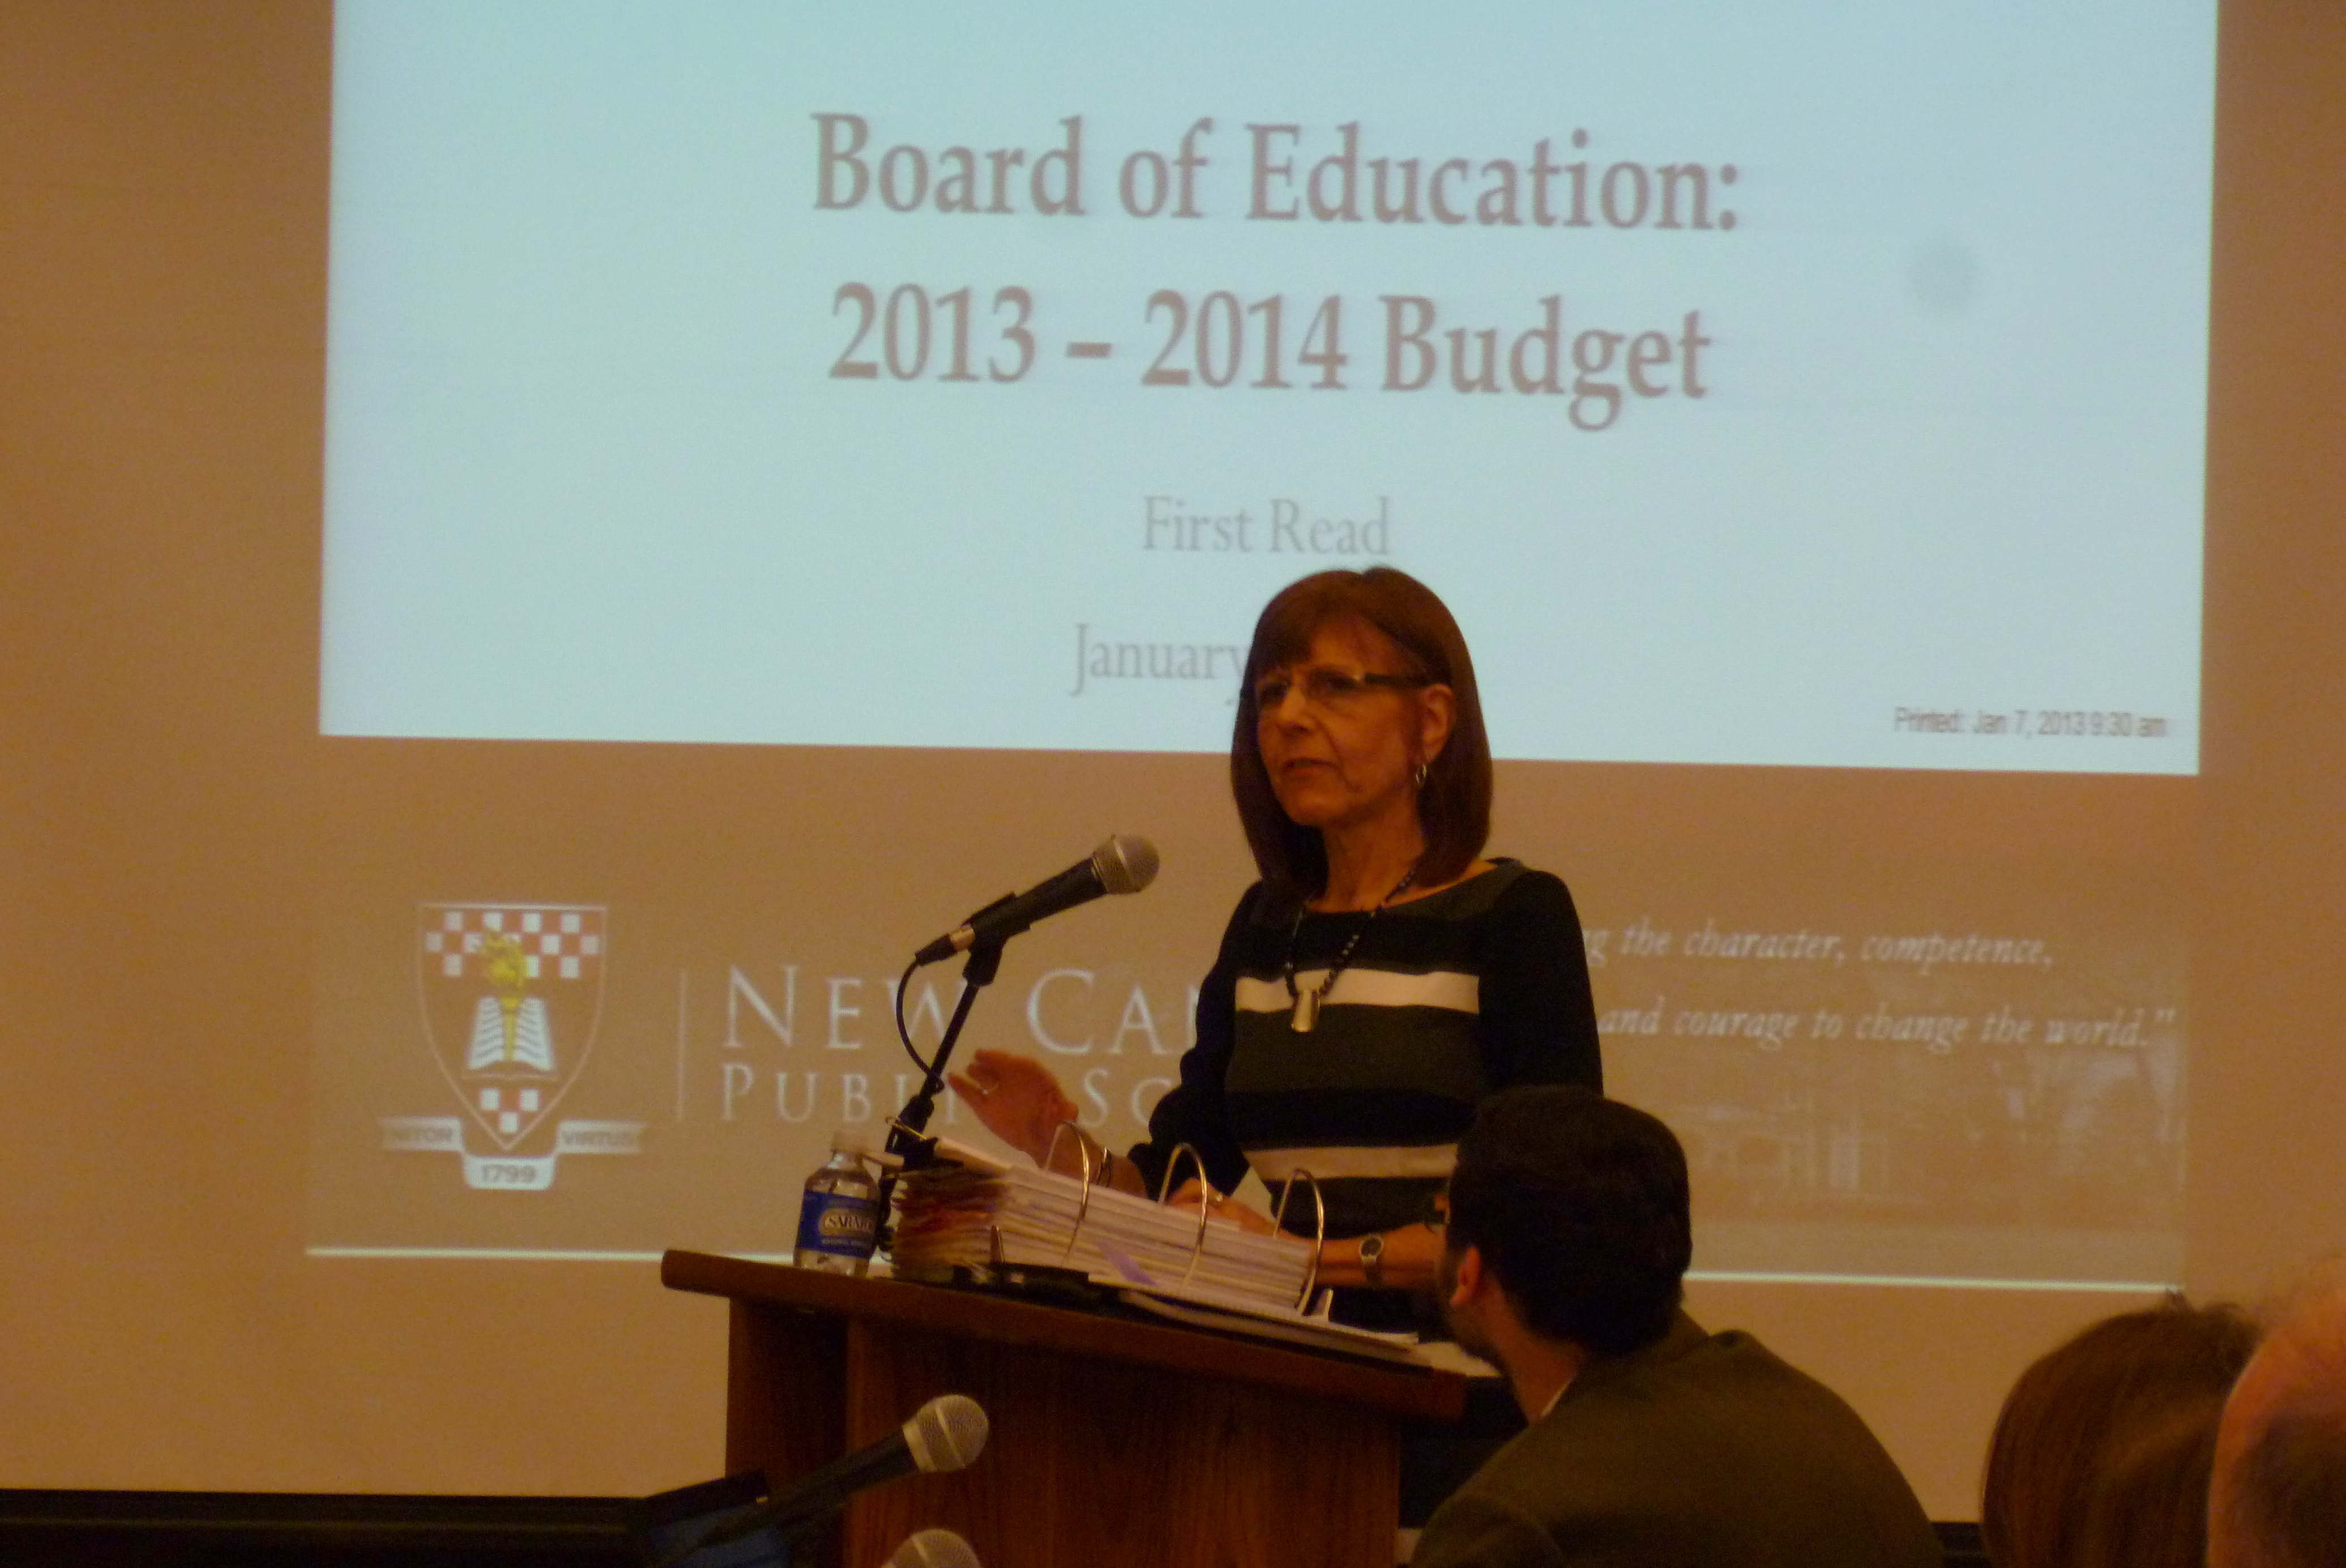 New Canaan Schools Superintendent Mary Kolek presents the proposed 2013-14 budget during Monday's Board of Education meeting.